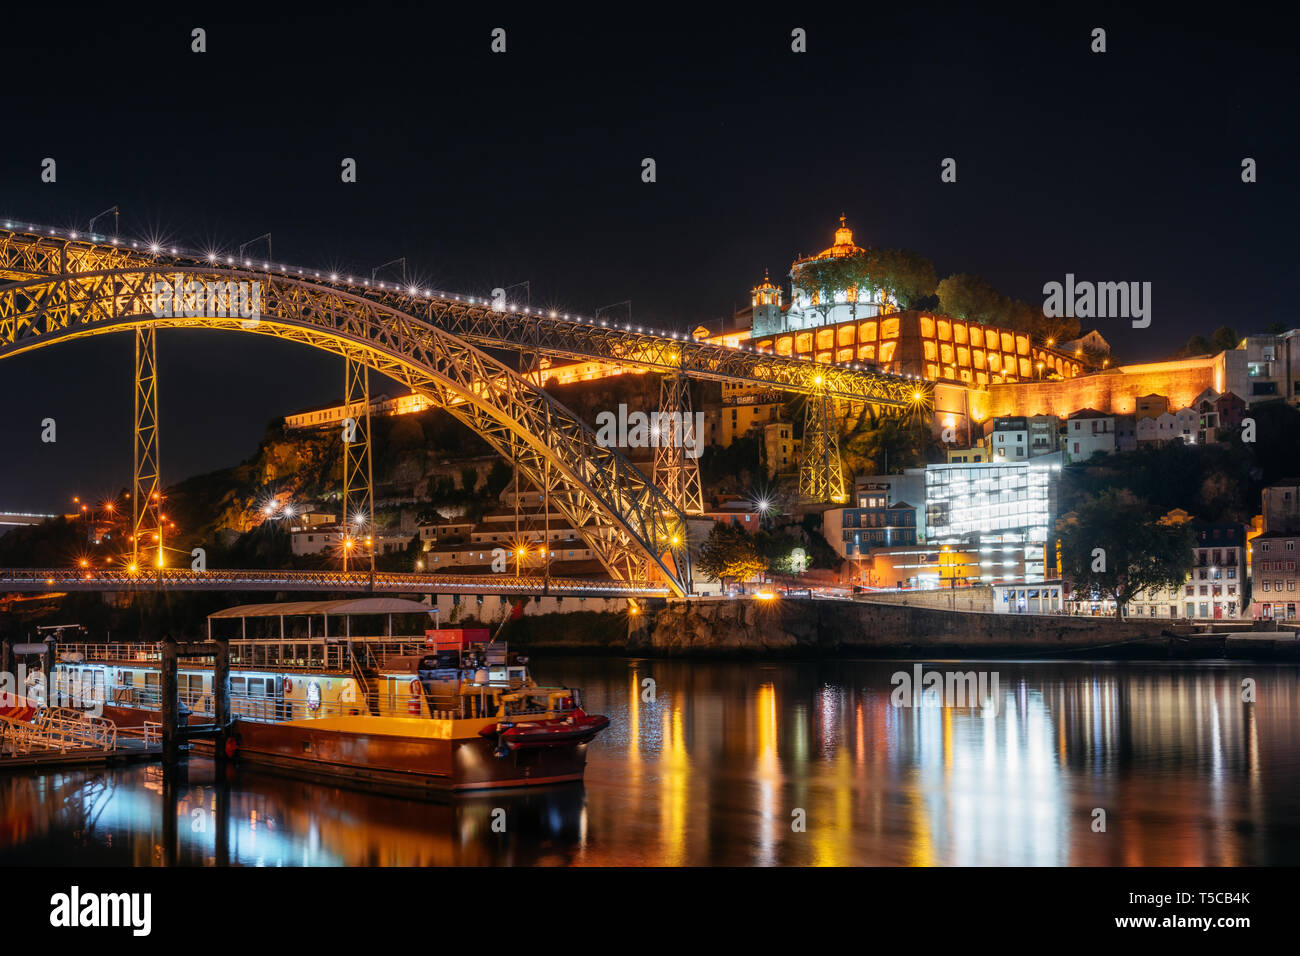 Dom Luis I bridge, medieval monastery fort Mosteiro da Serra do Pilar and boat with illumination, Porto old town, Portugal - Stock Image